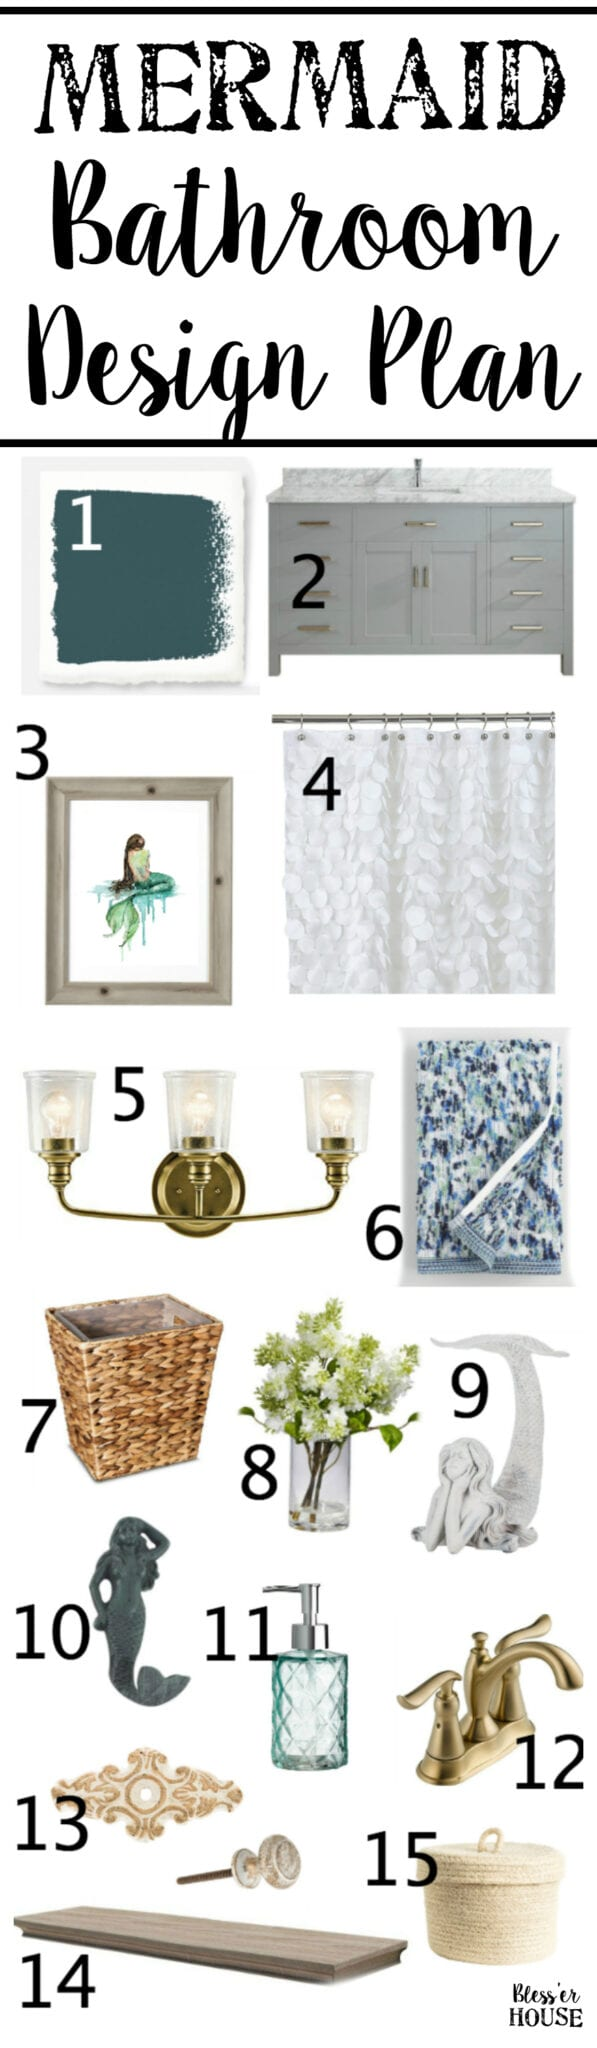 Mermaid bathroom - Mermaid Bathroom Design Plan Blesserhouse Com A Before Tour Of A Tired Beige